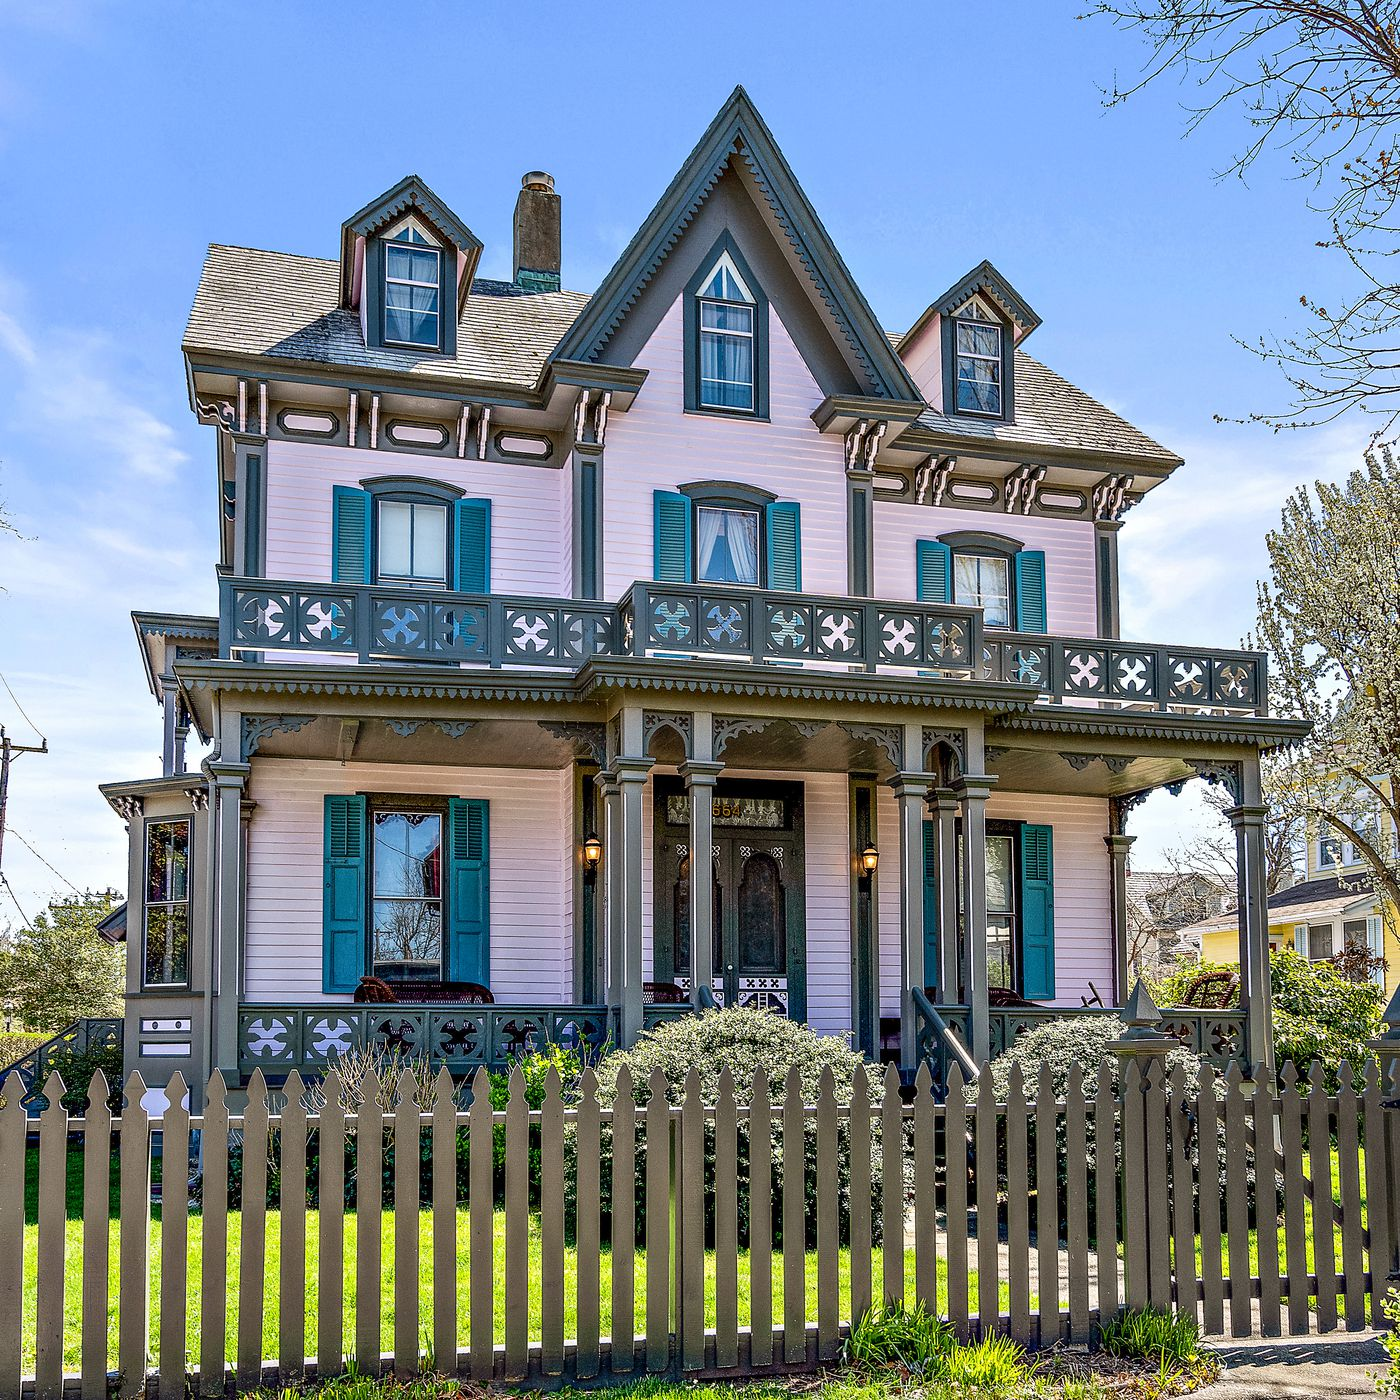 Wondrous 5 Historic Victorian Homes For Sale In Cape May Curbed Philly Home Interior And Landscaping Mentranervesignezvosmurscom